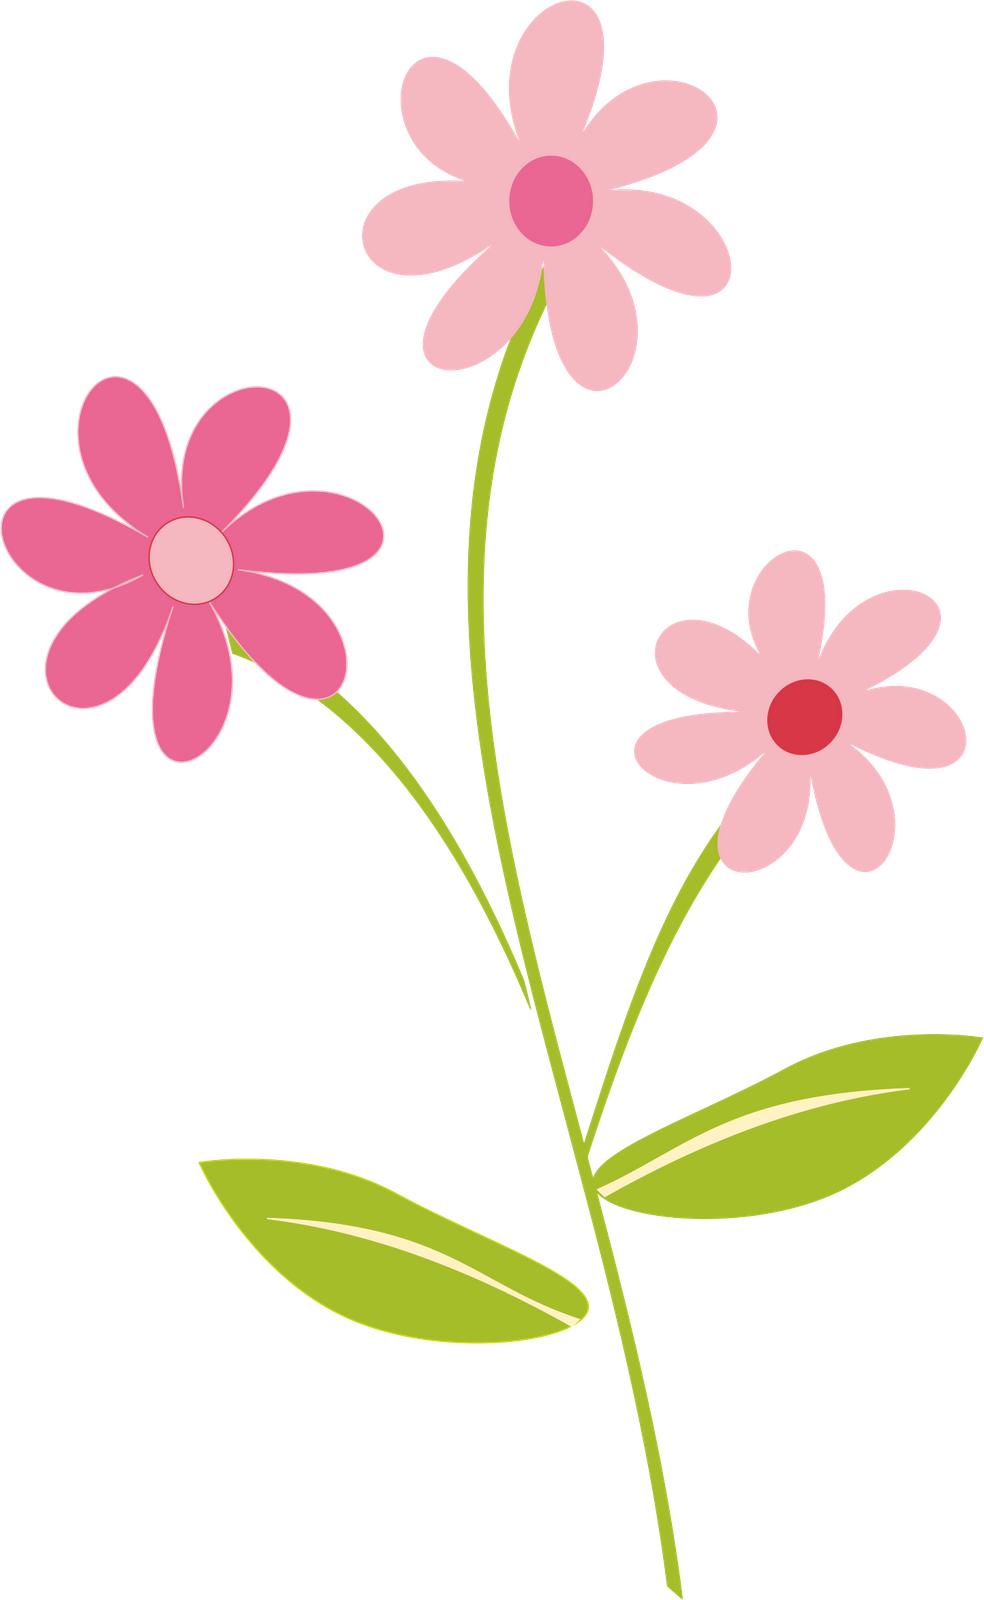 flowers border clipart png pictures 5639 transparentpng rh transparentpng com flower border clipart png flower border clipart images